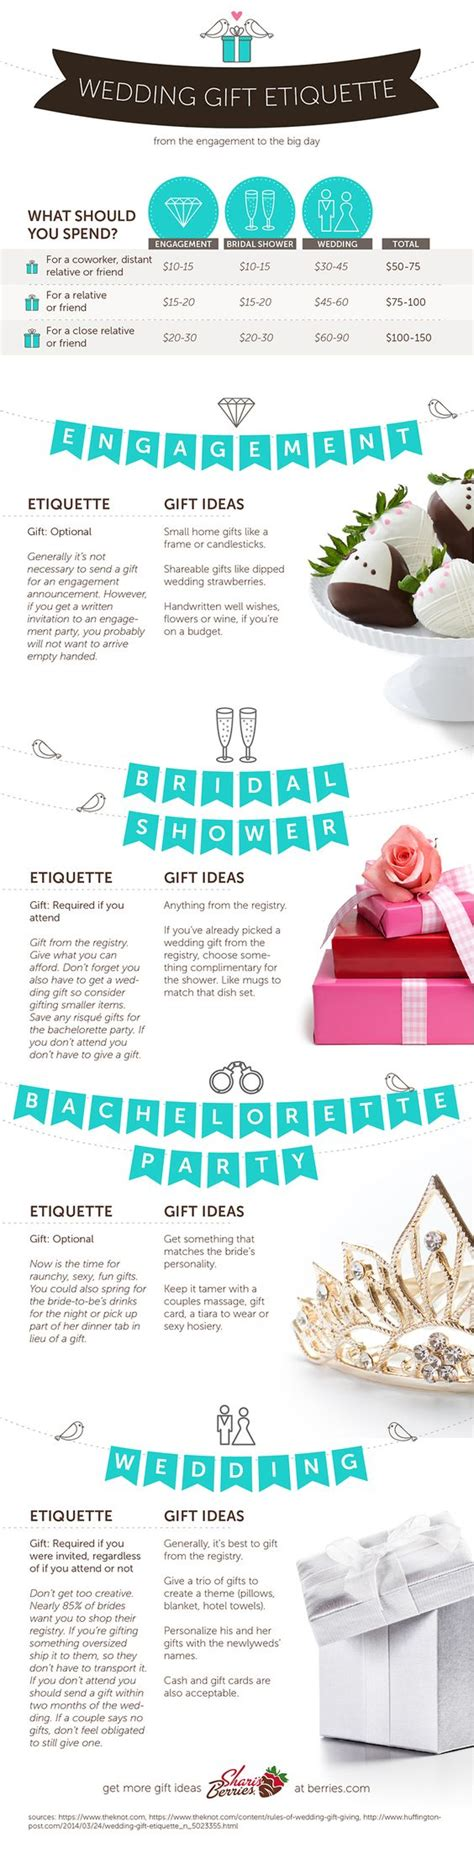 Wedding Gift Etiquette wedding gift guide and etiquette do i need a gift for